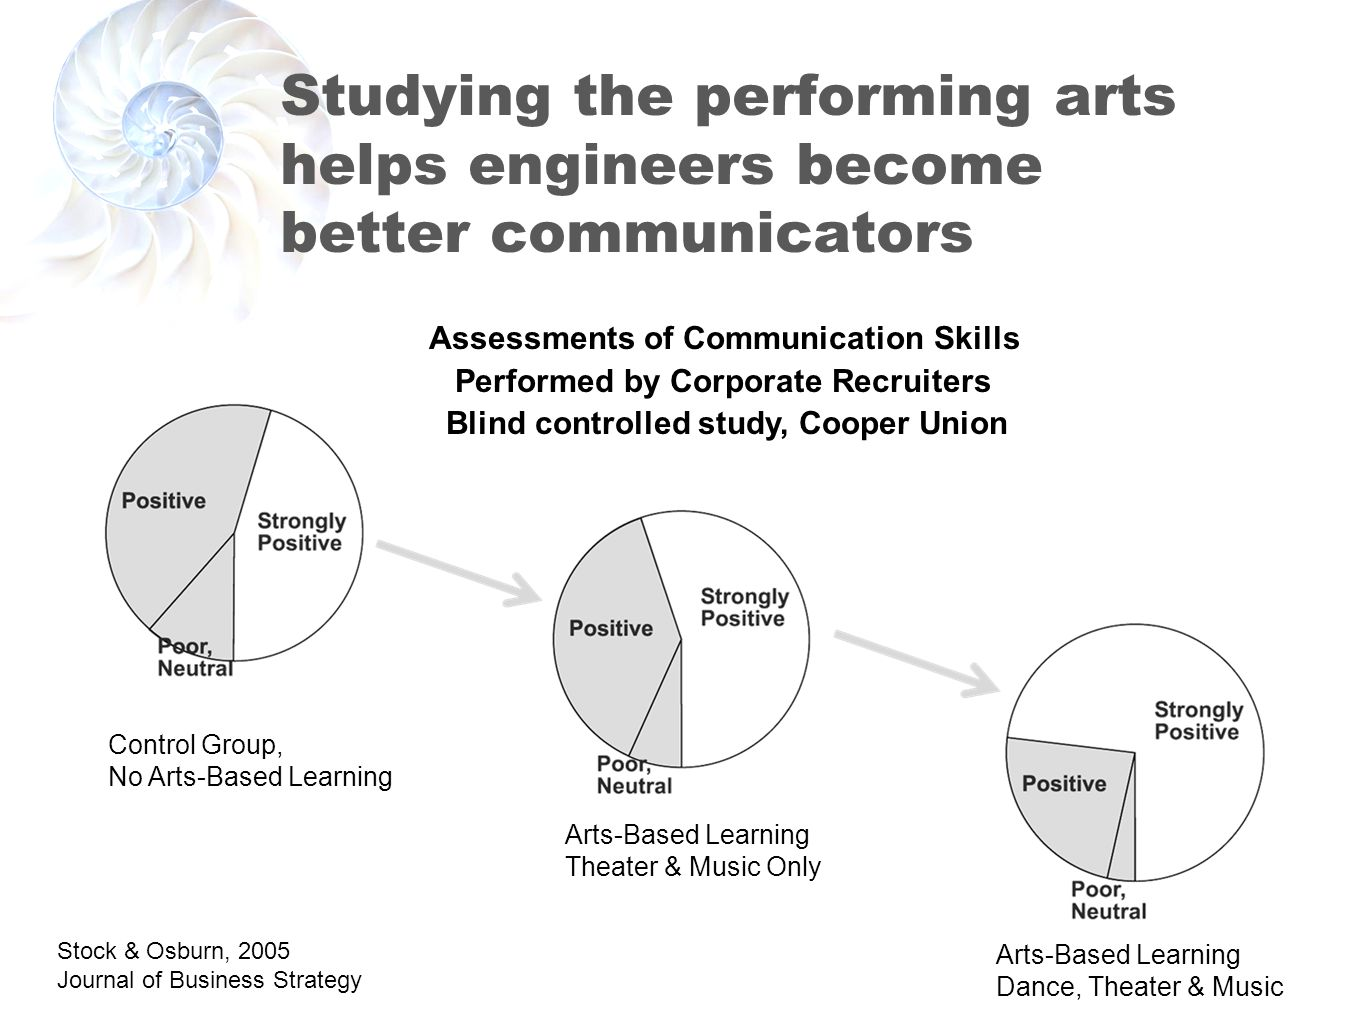 Studying the performing arts helps engineers become better communicators Control Group, No Arts-Based Learning Arts-Based Learning Theater & Music Only Arts-Based Learning Dance, Theater & Music Assessments of Communication Skills Performed by Corporate Recruiters Blind controlled study, Cooper Union Stock & Osburn, 2005 Journal of Business Strategy